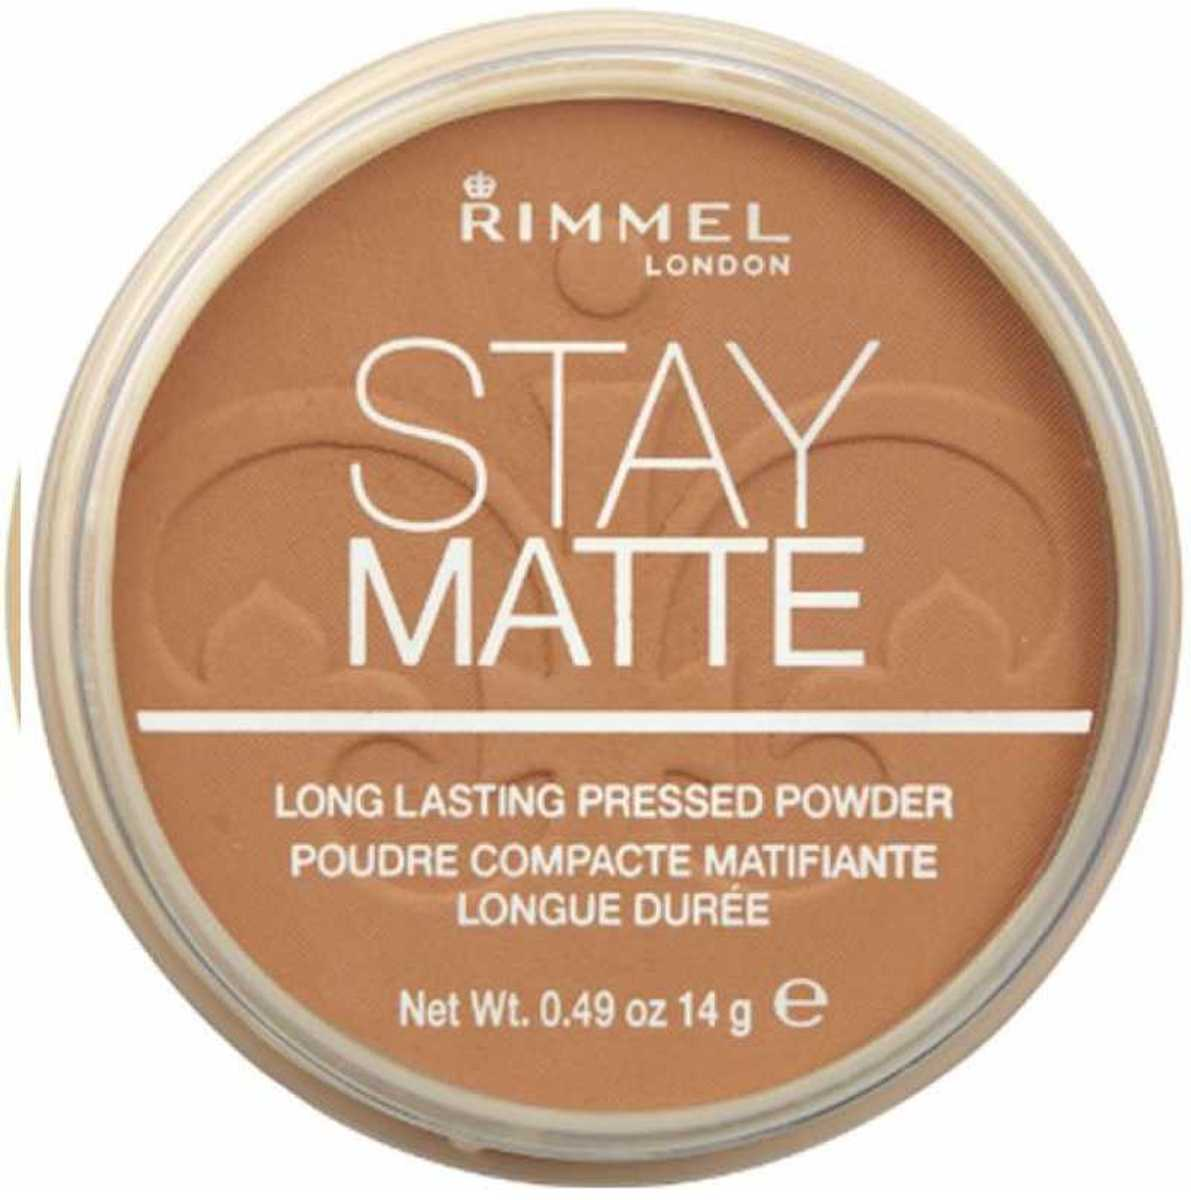 Rimmel London Stay Matte Pressed Powder - 040 Honey